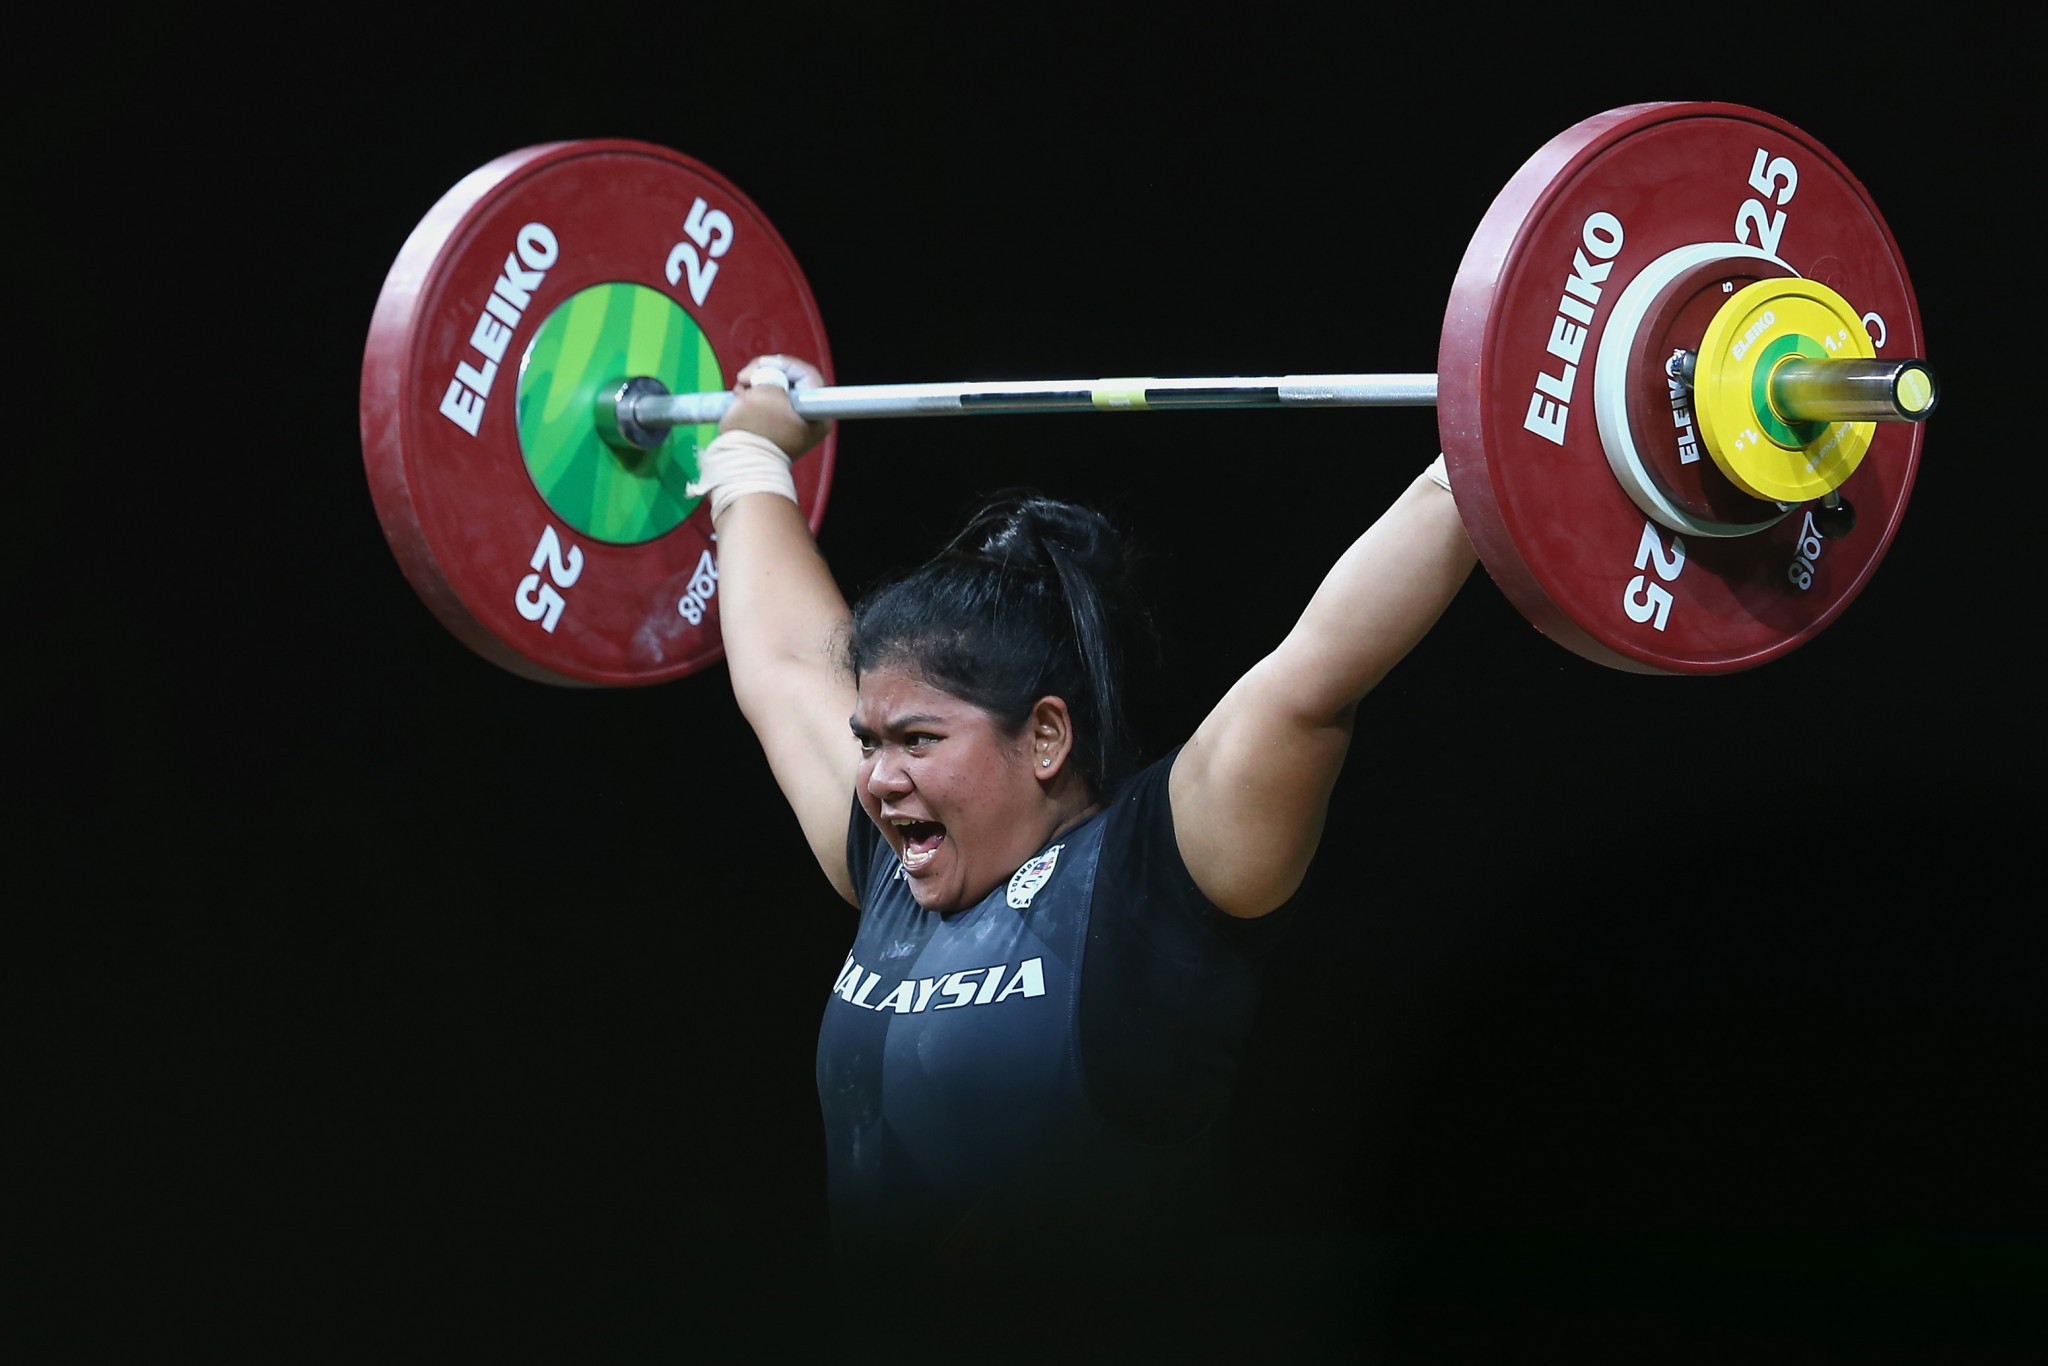 National Sports Council Malaysia pledged to continue elite programmes for weightlifters despite recent sanctions by the International Weightlifting Federation ©Getty Images